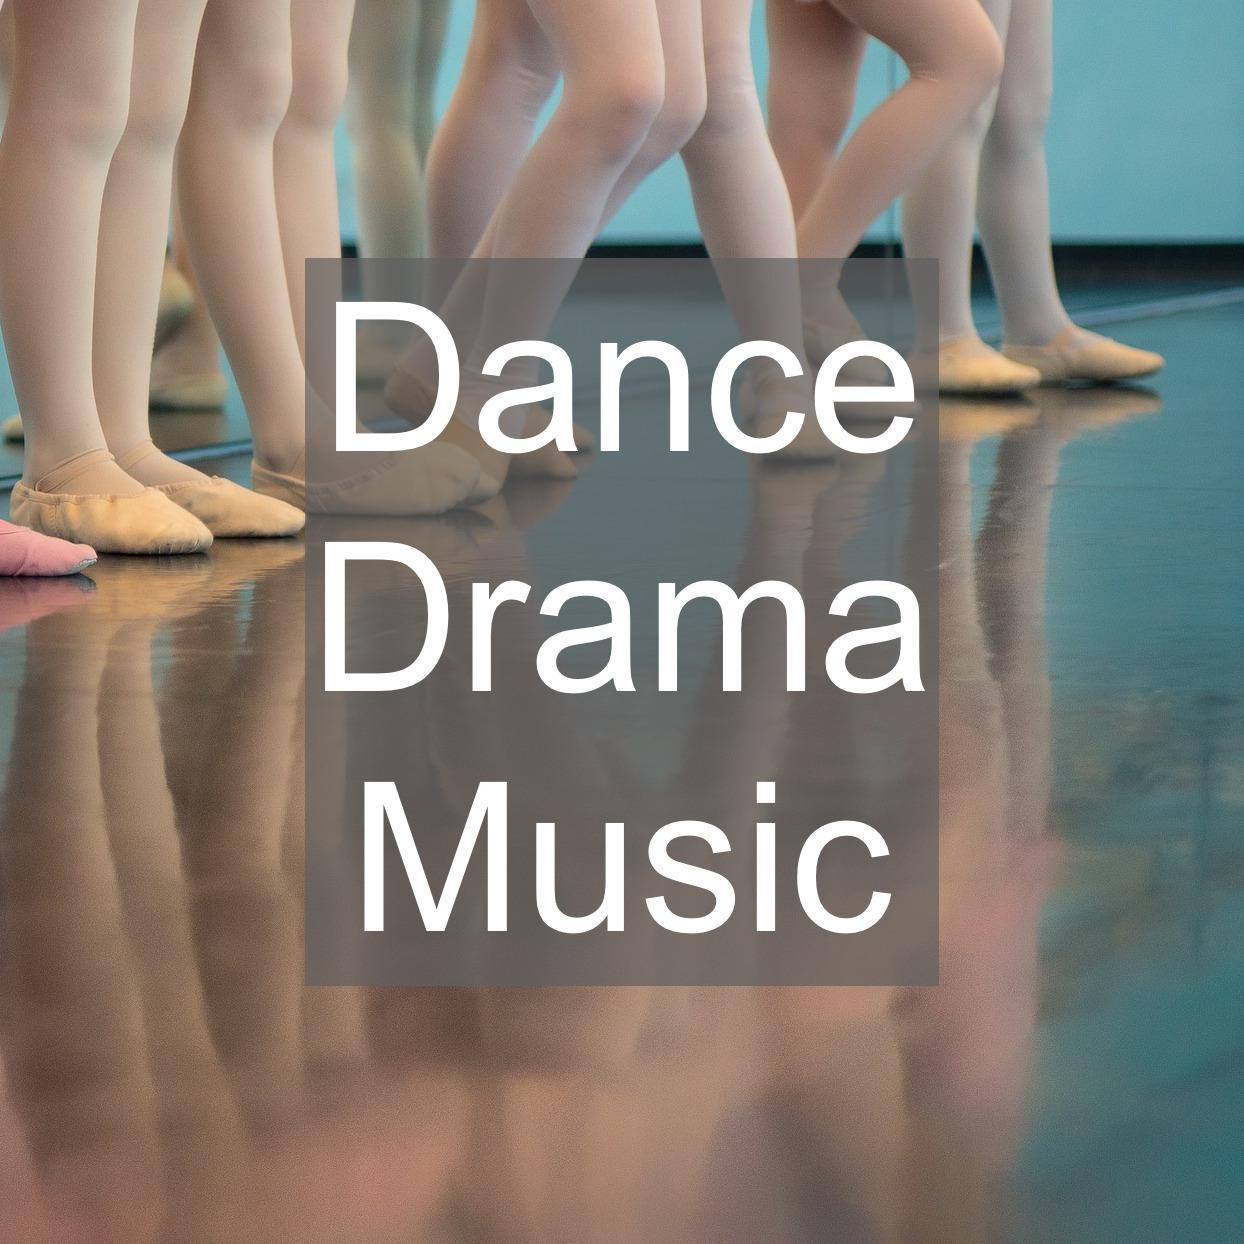 Dance drama and music schools and groups